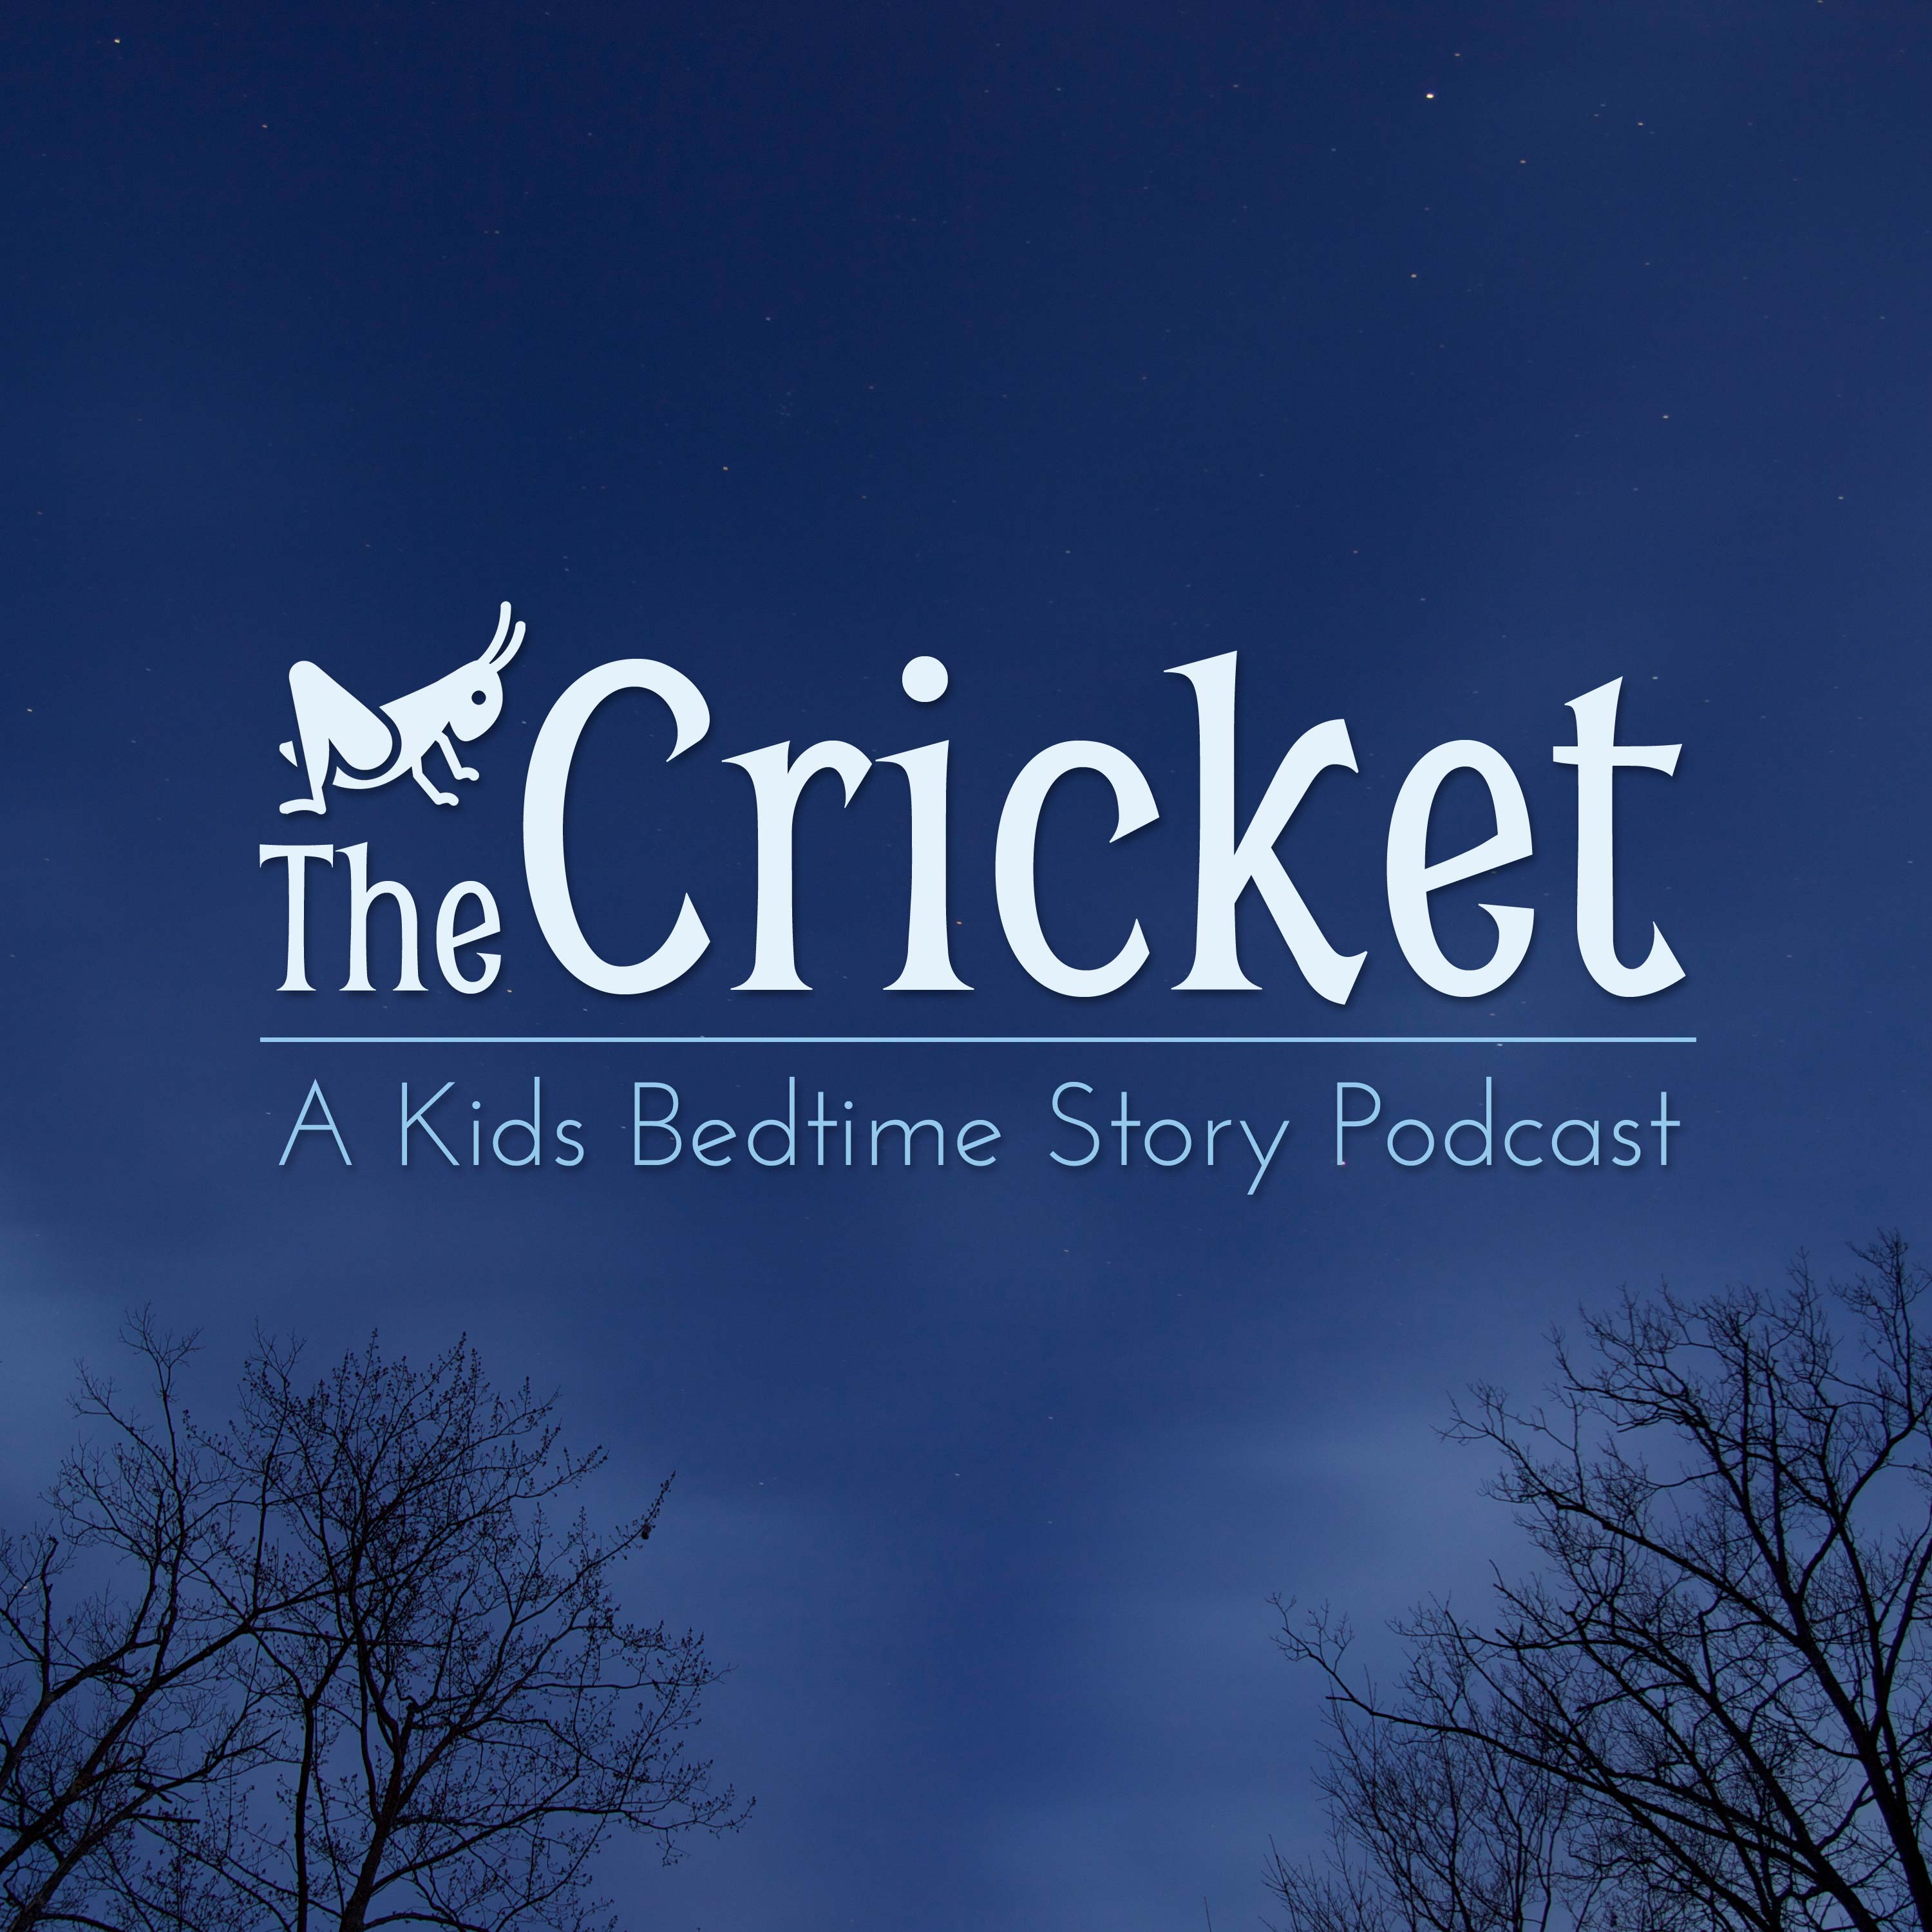 The Cricket - A Kids Bedtime Story Podcast show art